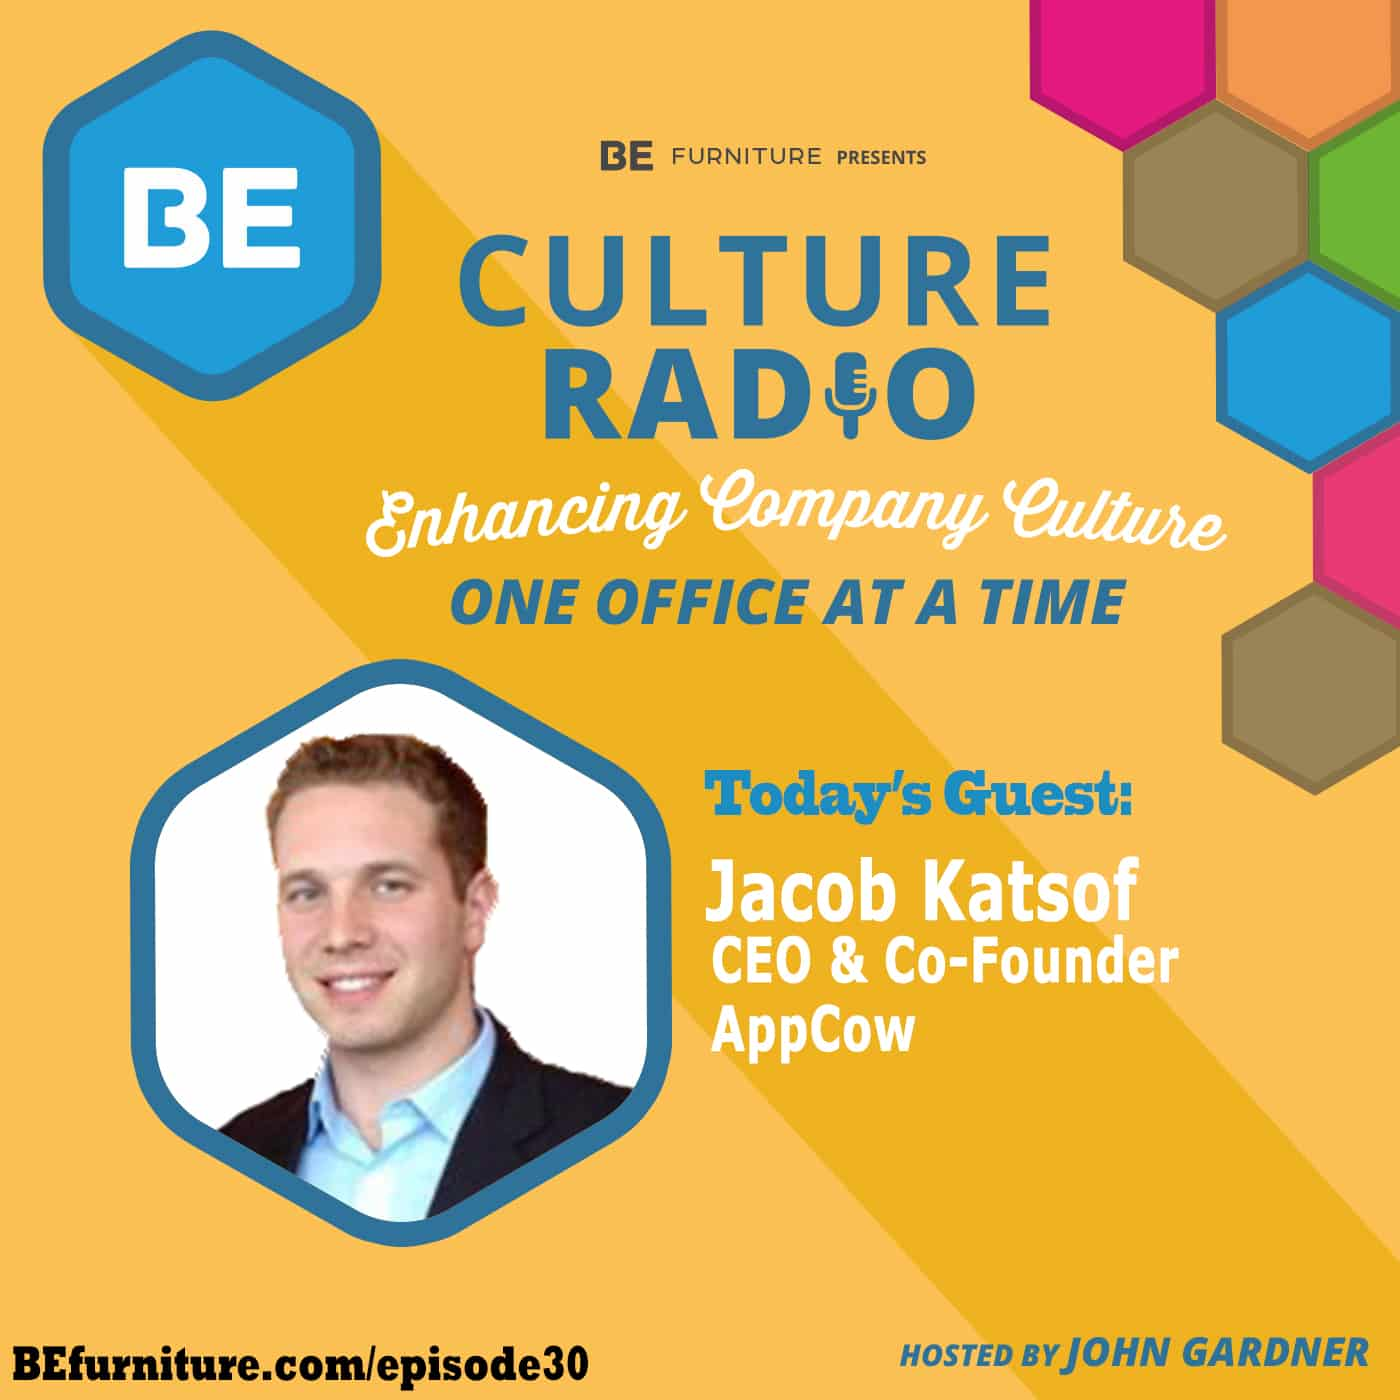 Jacob Katsof - CEO and founder of AppCow